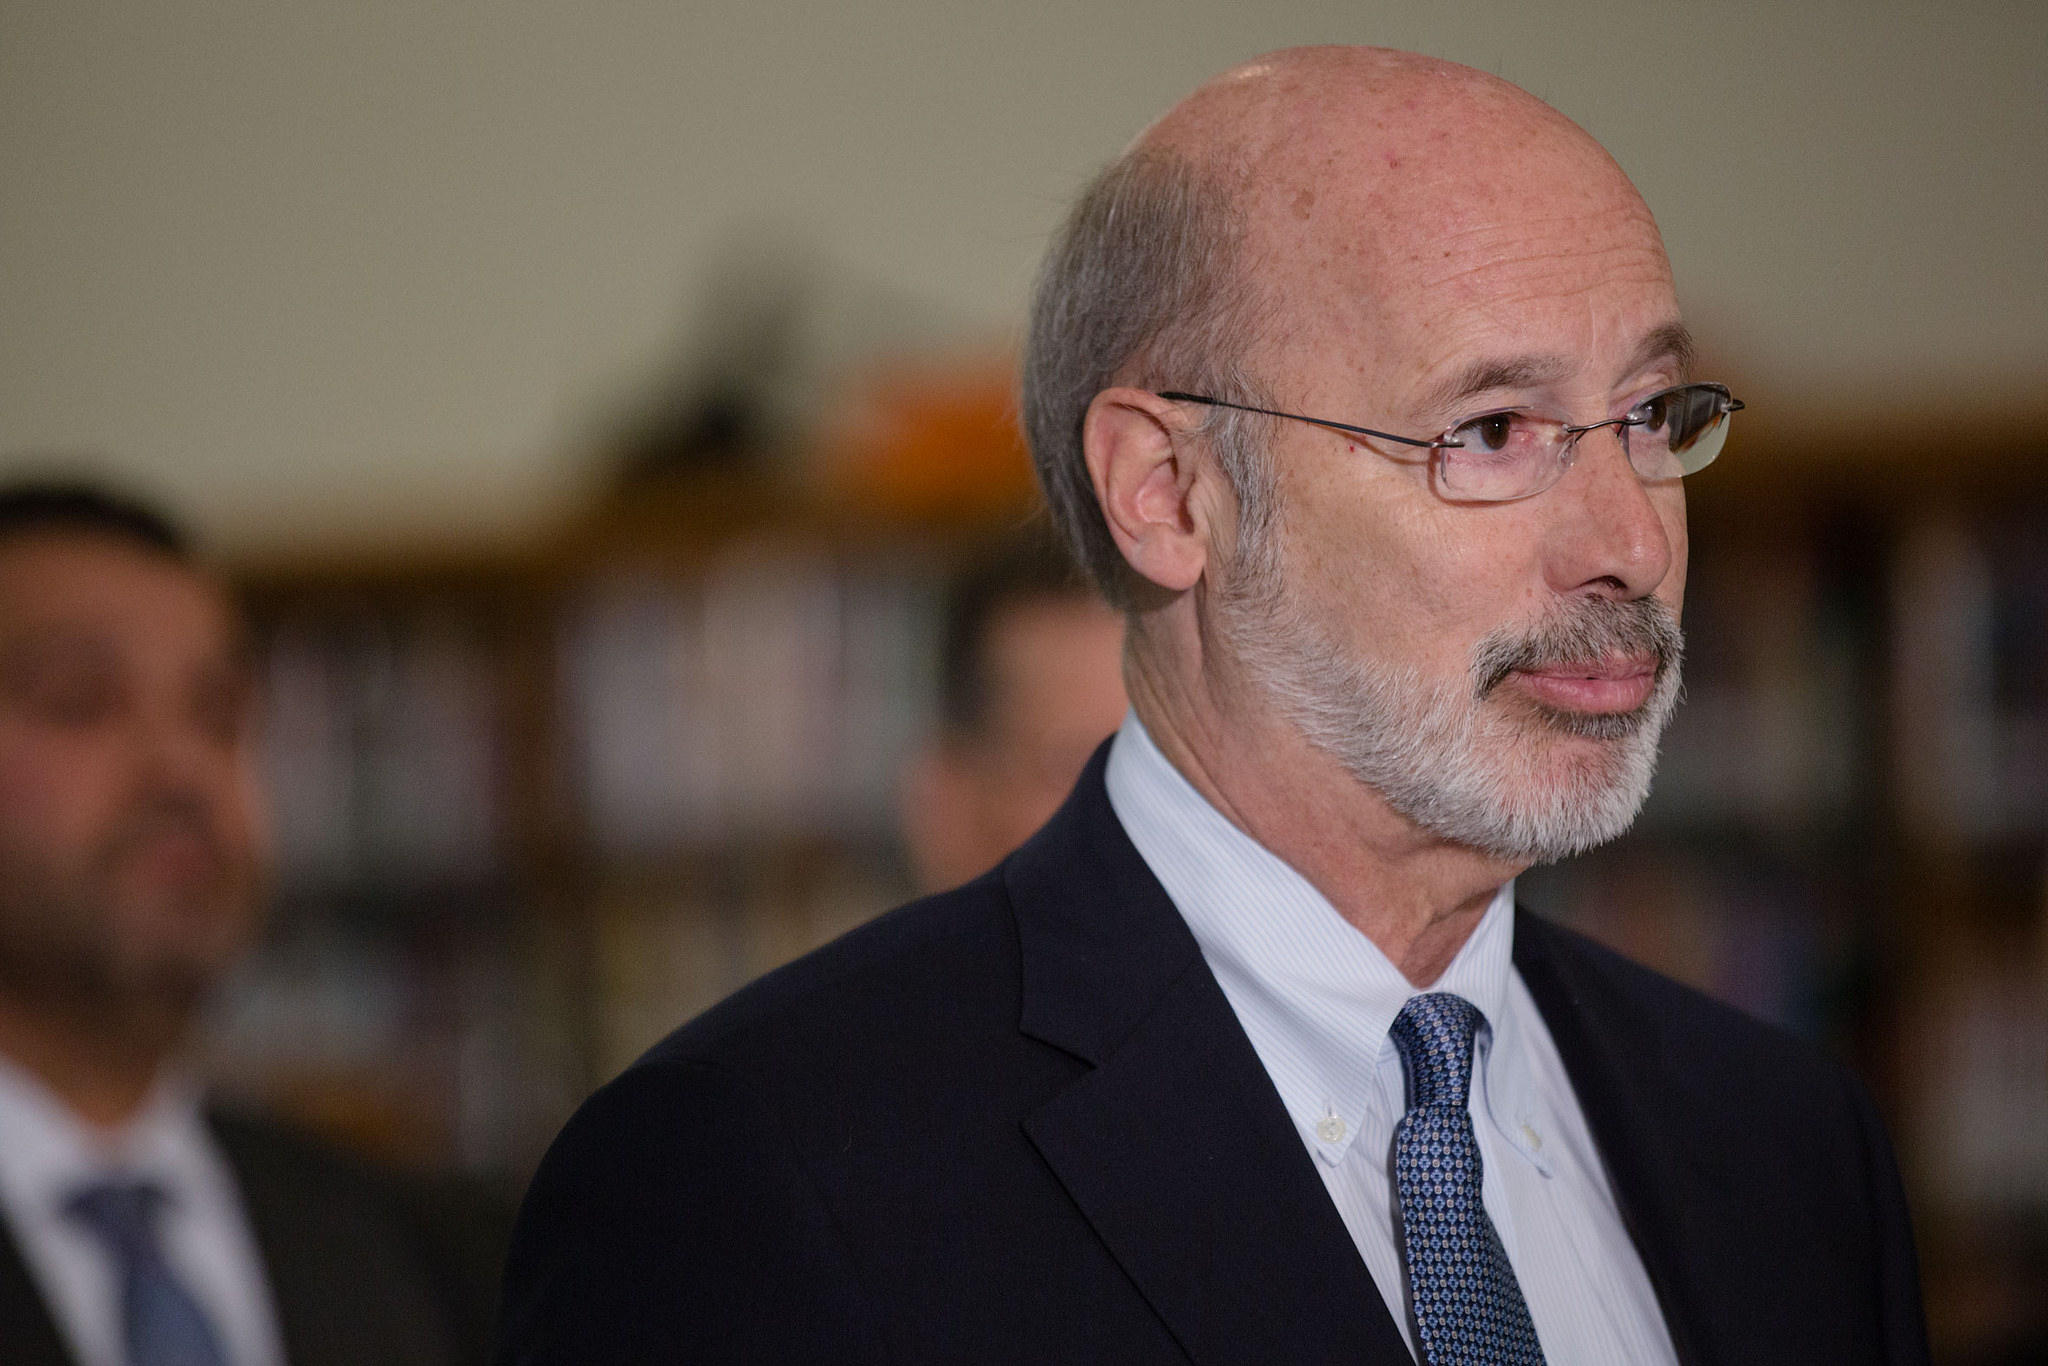 Gov. Wolf Says Time Running Out On Budget Deal Before Downgrade